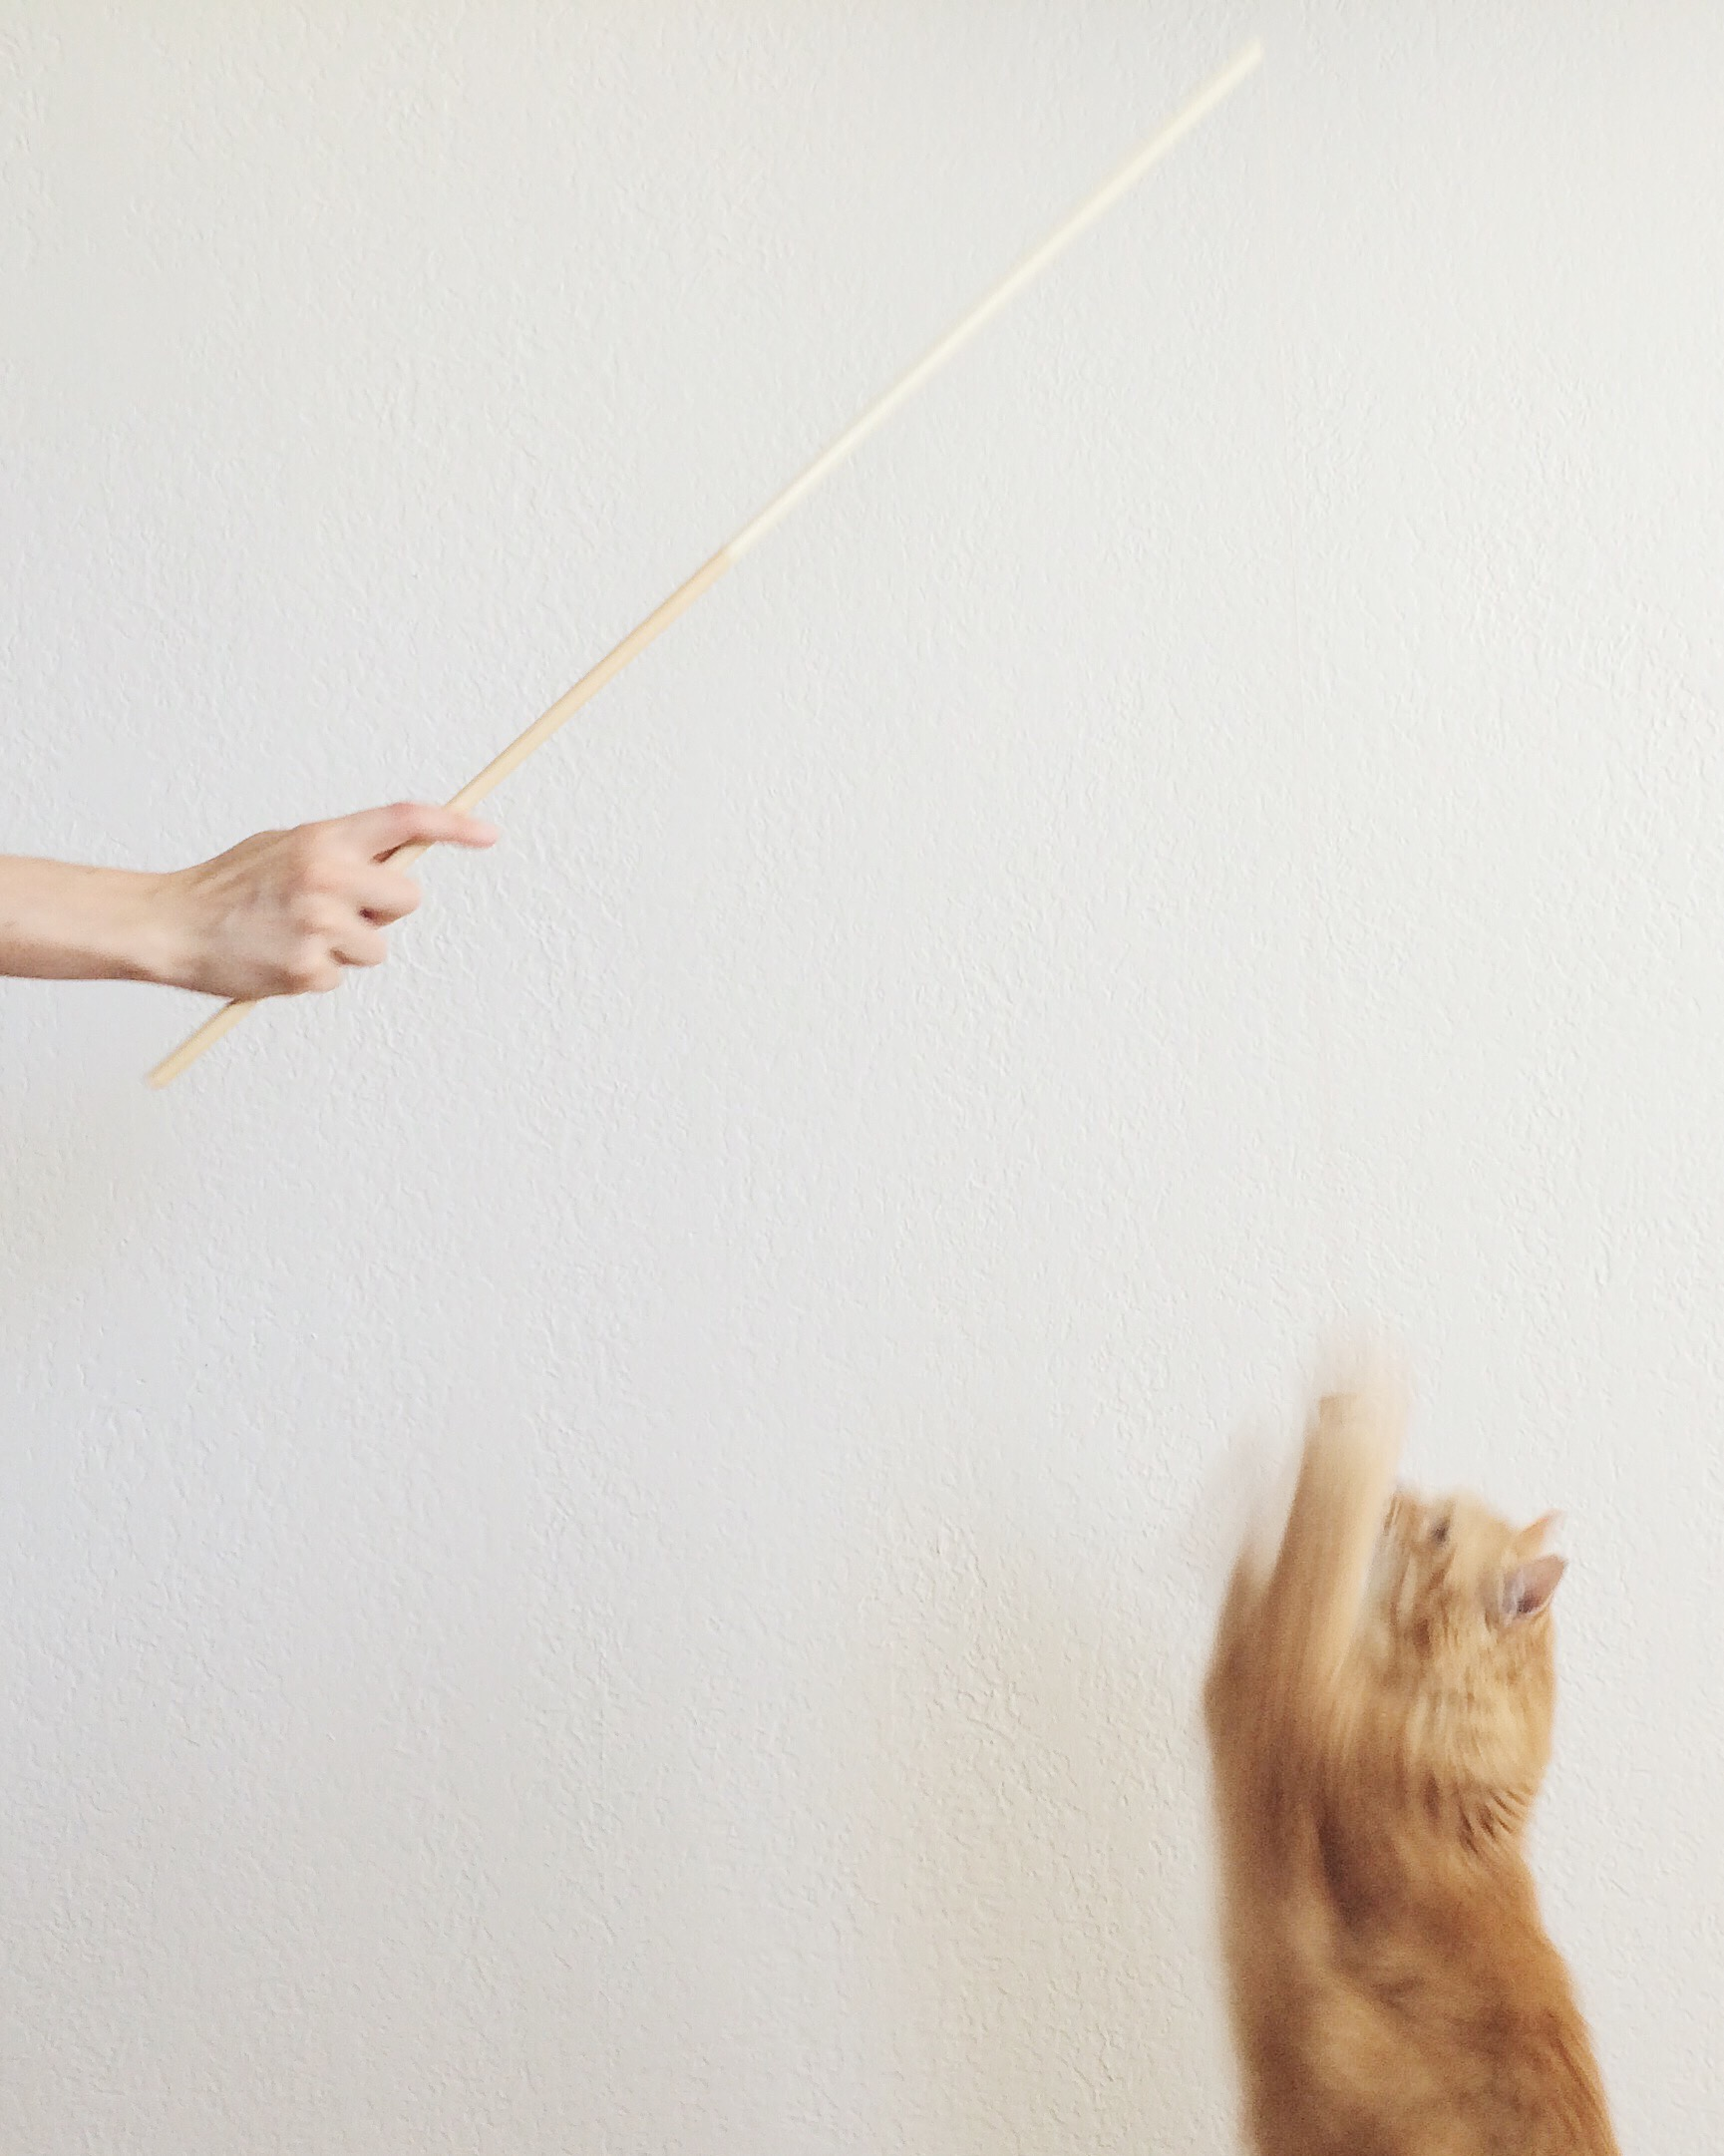 Behind the Design of the Fishing Rod Cat Toy